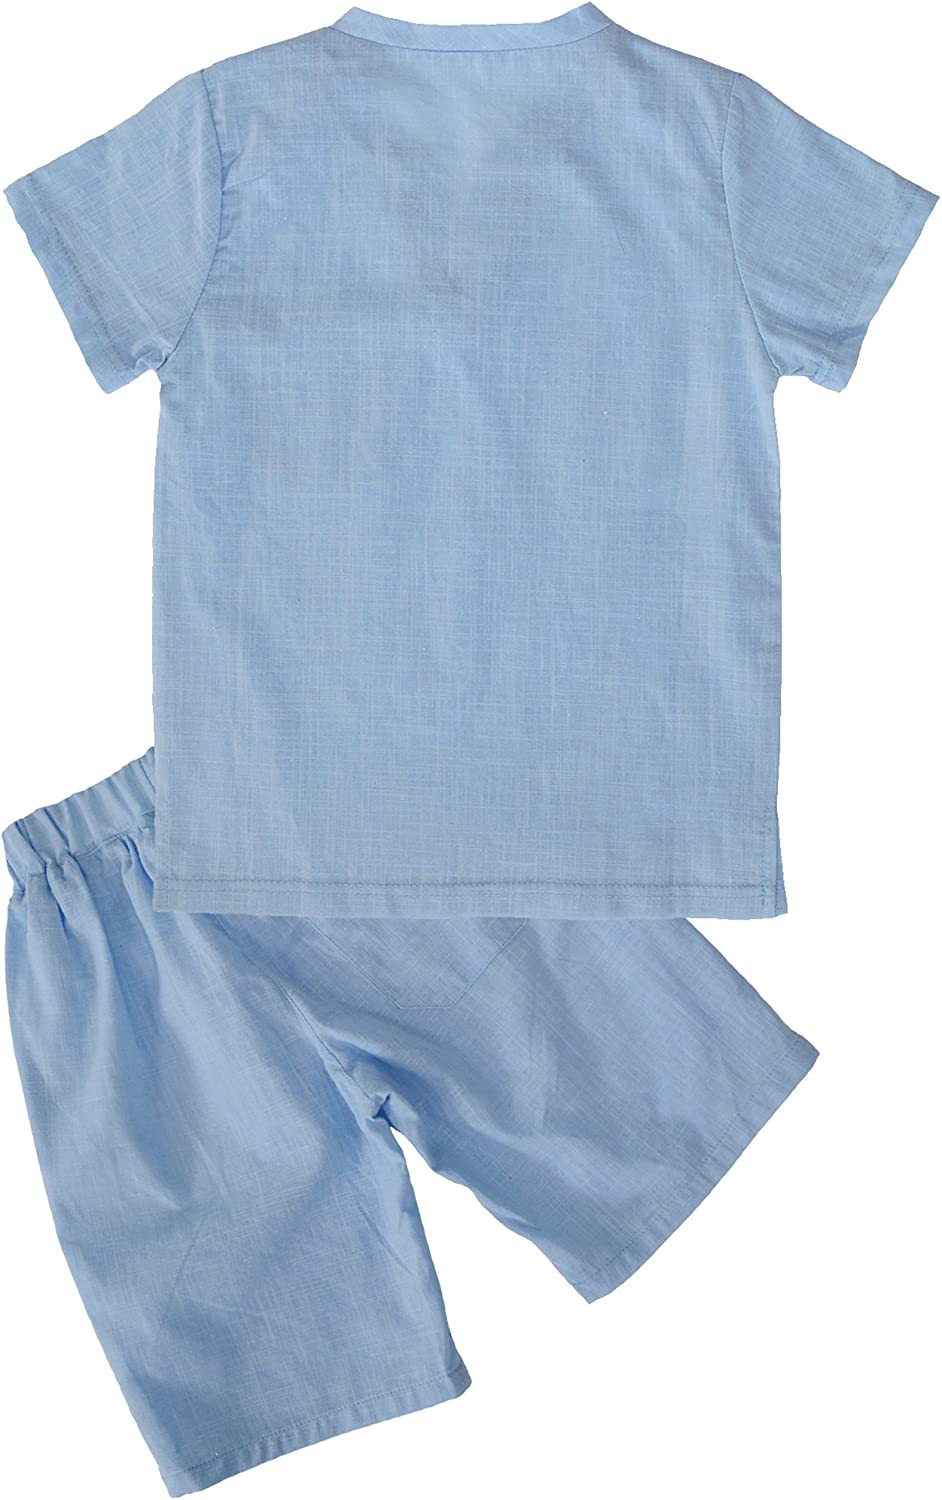 POBIDOBY Boys T-Shirt and Shorts Set Cotton Linen Summer Short Sleeve Children Two Pieces Clothing Sets